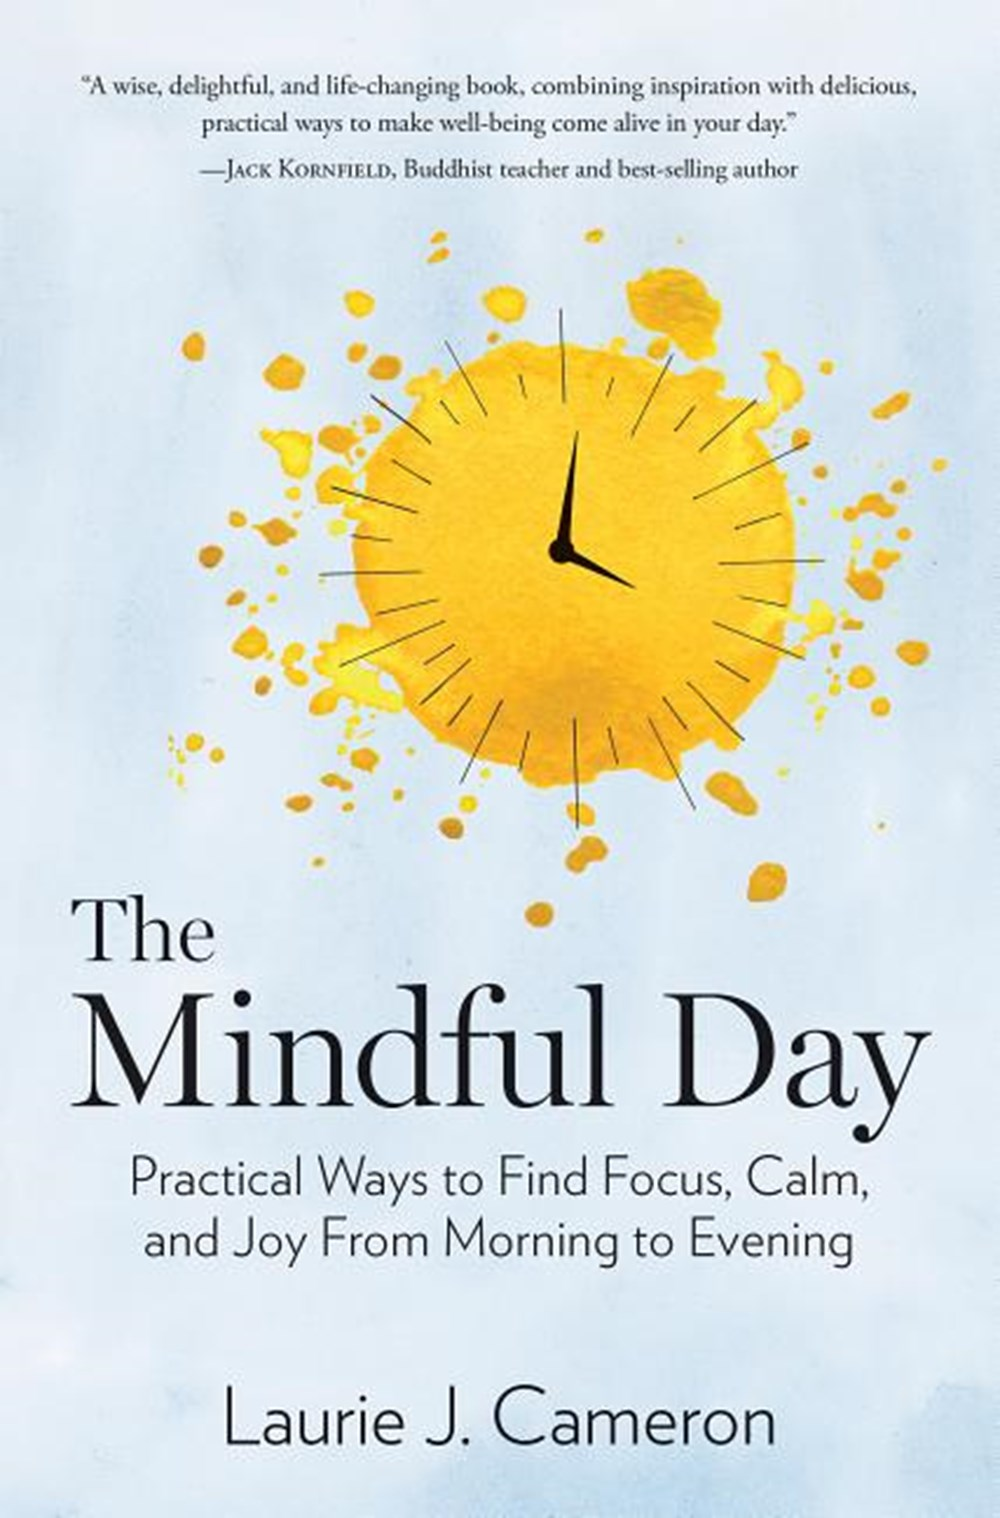 Mindful Day How to Find Focus, Calm, and Joy from Morning to Evening